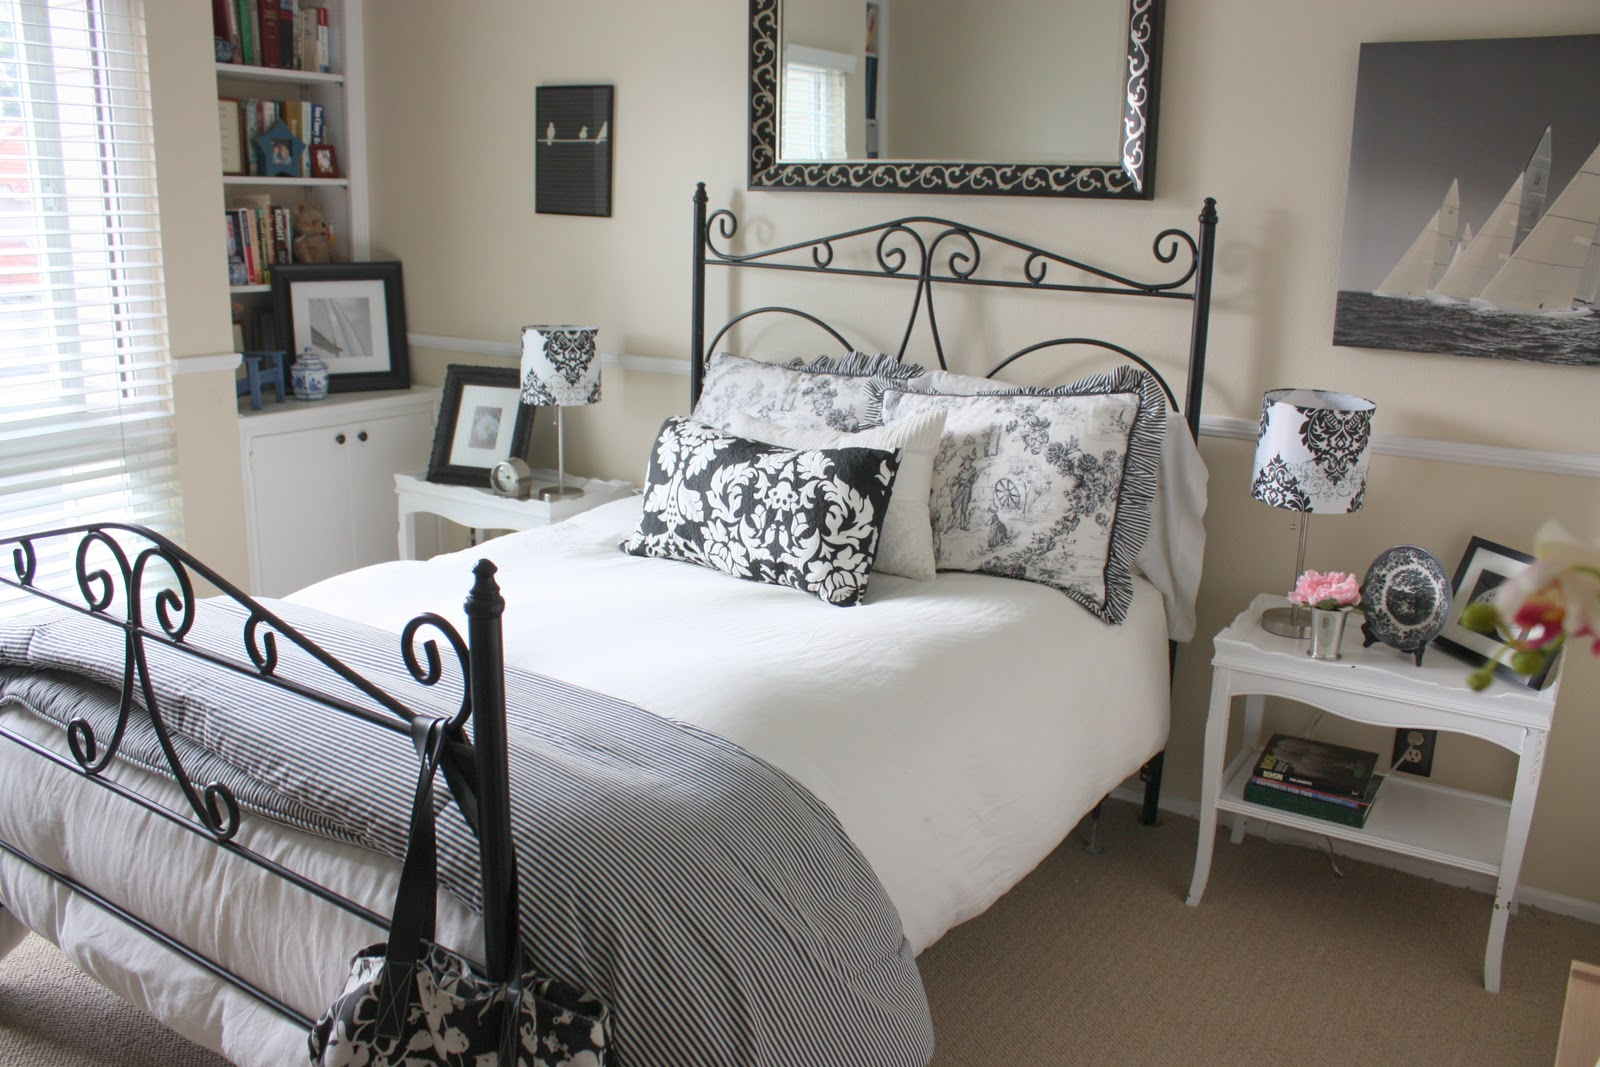 Guest Room Furnished with Sale, Vintage and